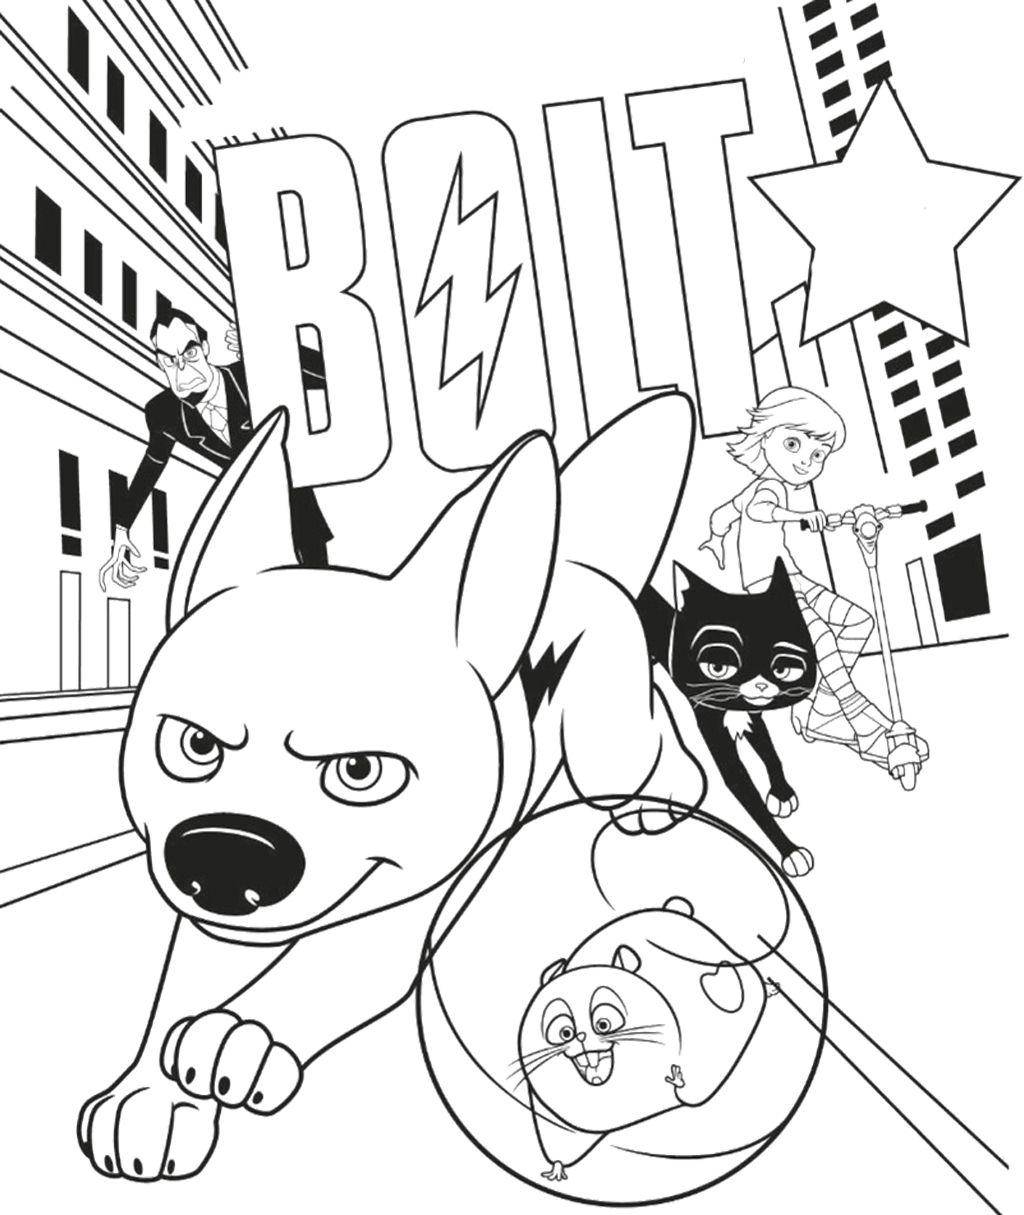 Disney Bolt Coloring Page - Bolt car coloring pages | Teacher Stuff ...